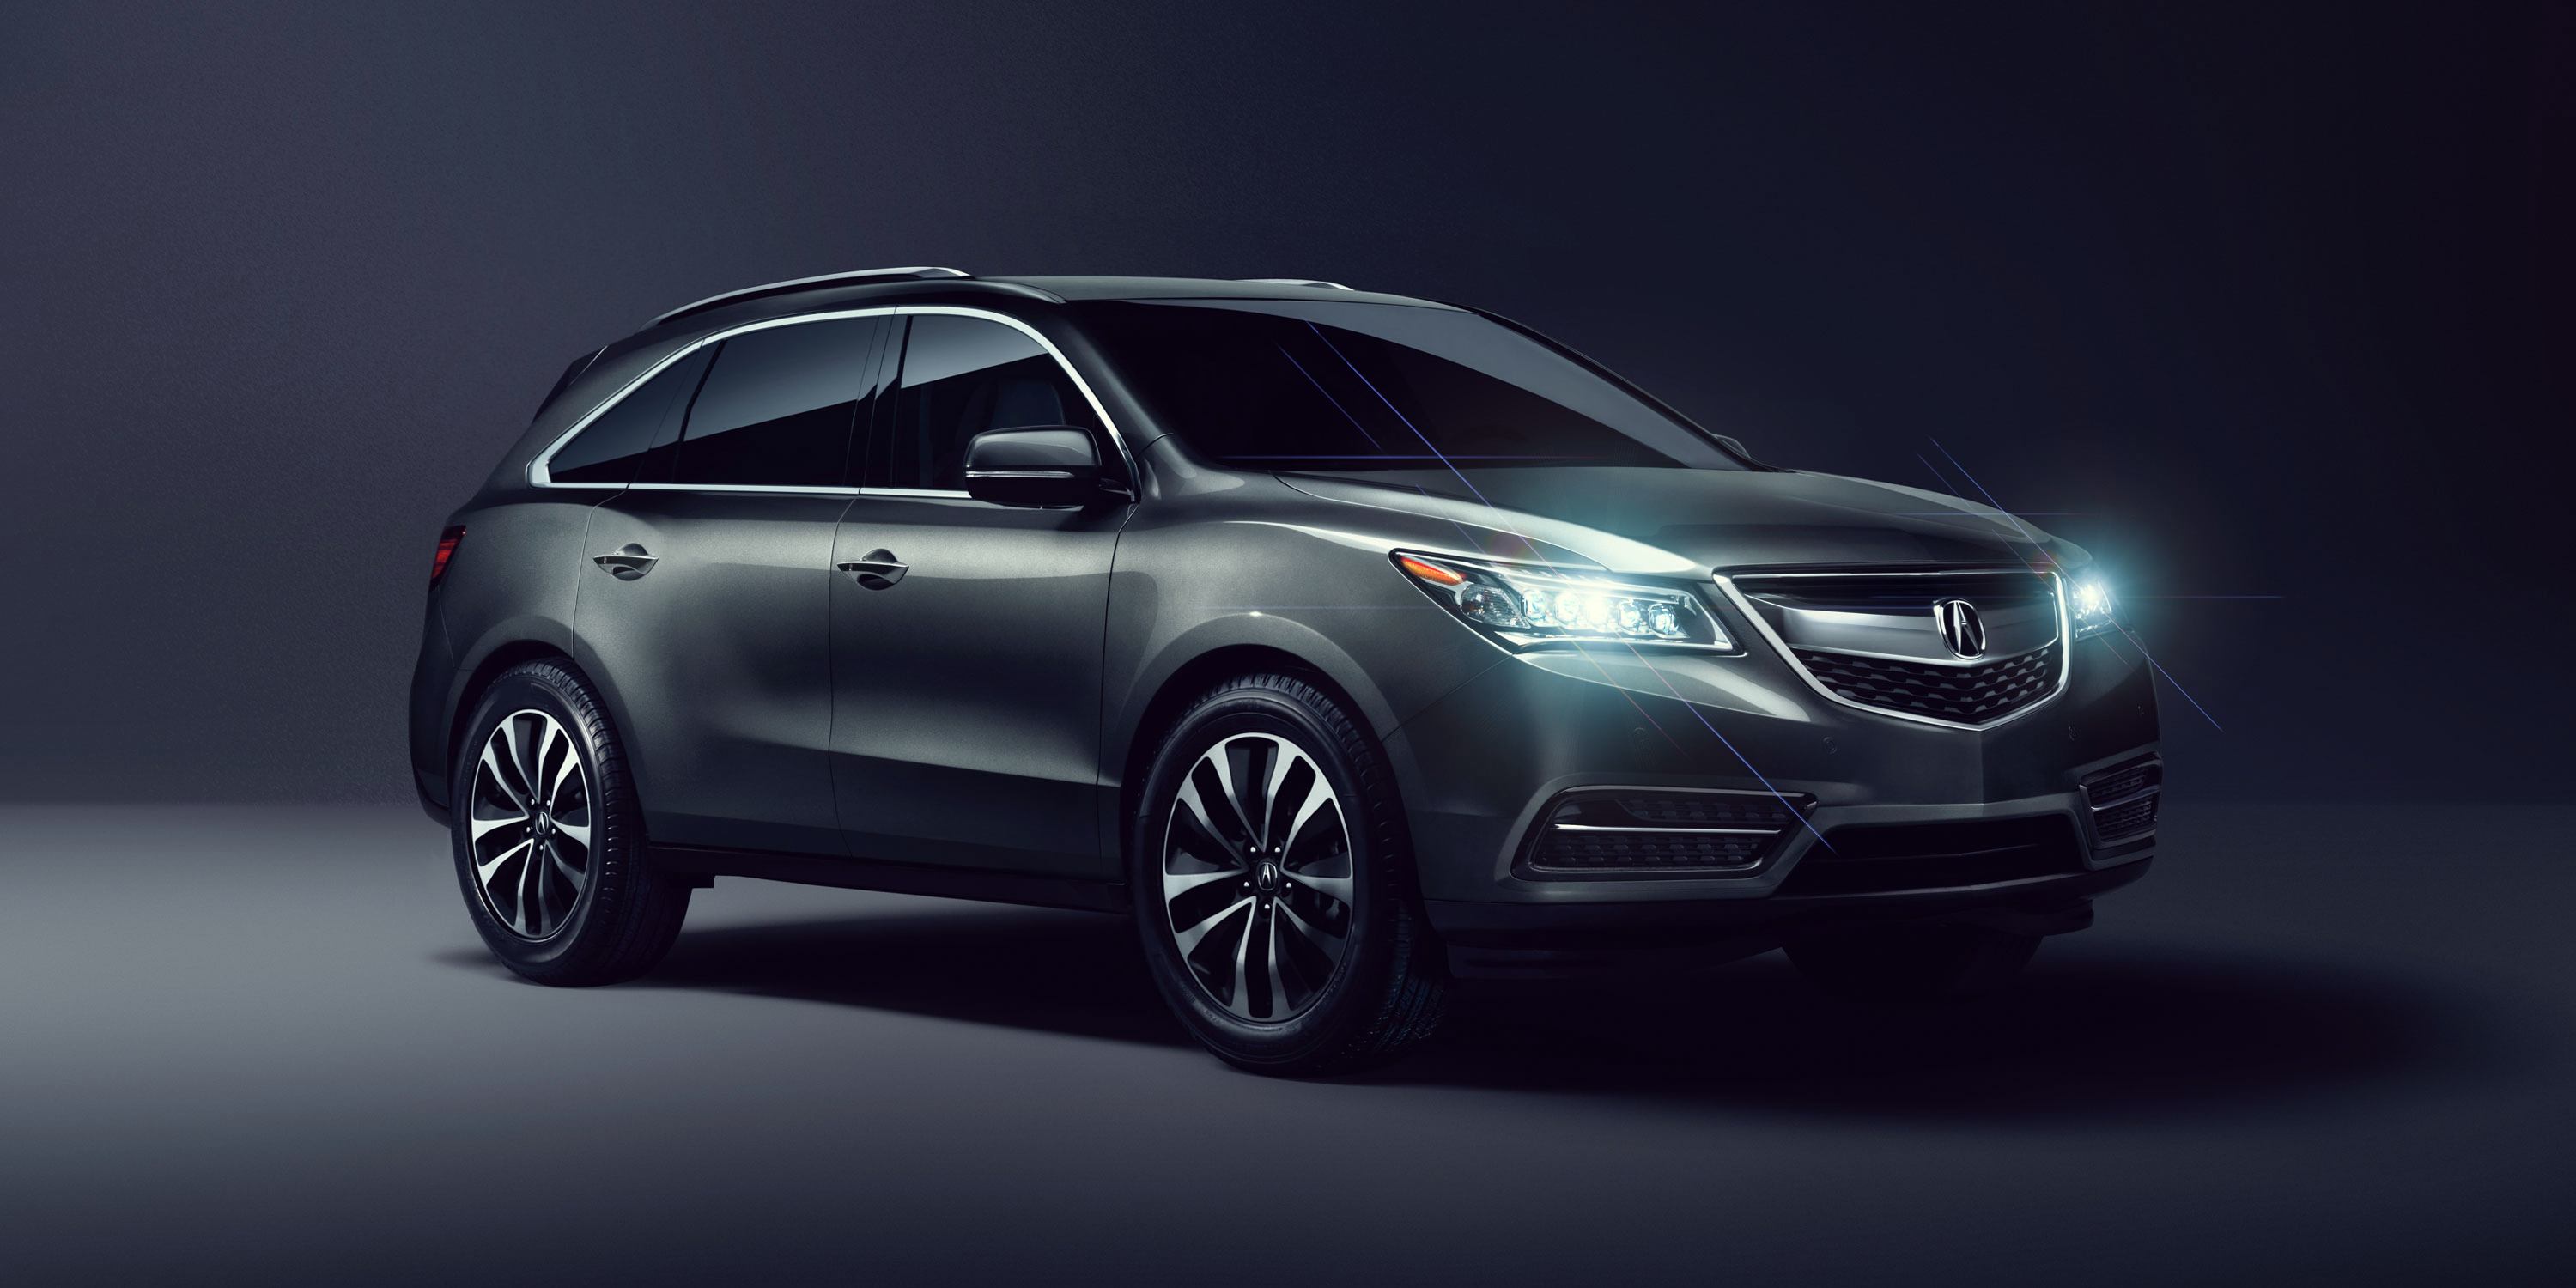 acura mdx Wallpapers hd A1